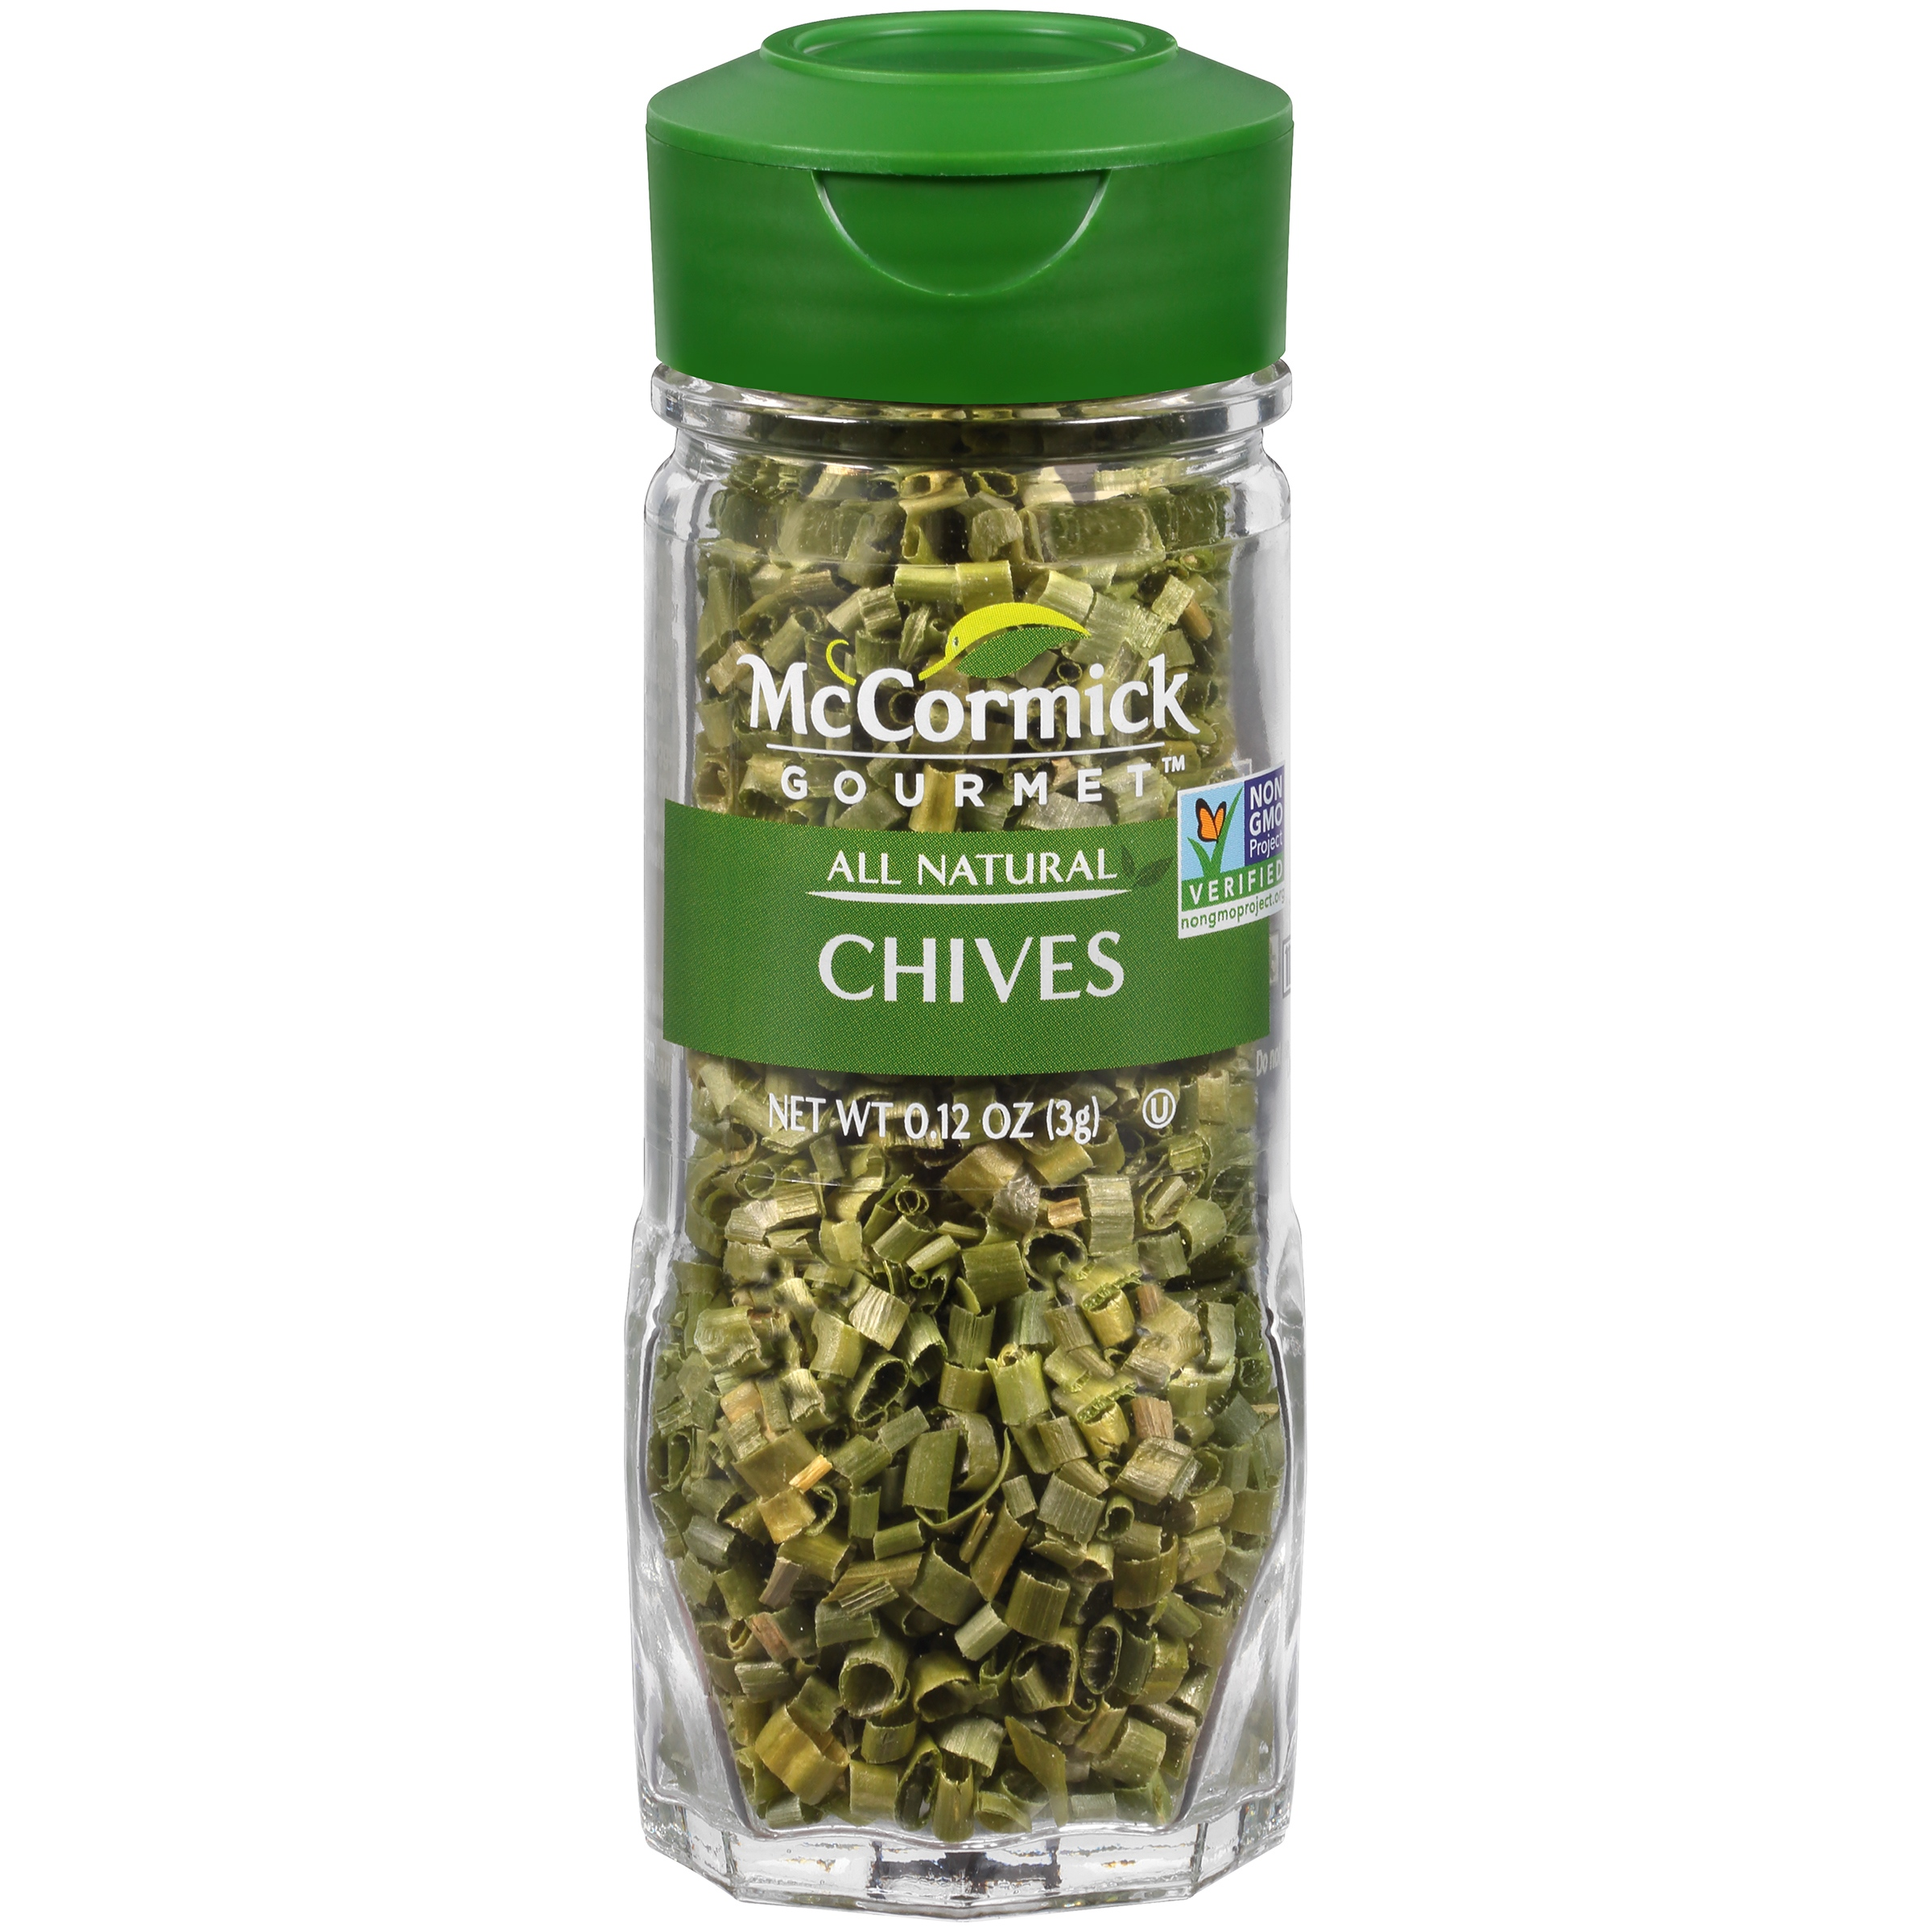 McCormick Gourmet Herbs Chopped Chives, .12 oz by McCormick & Co., Inc